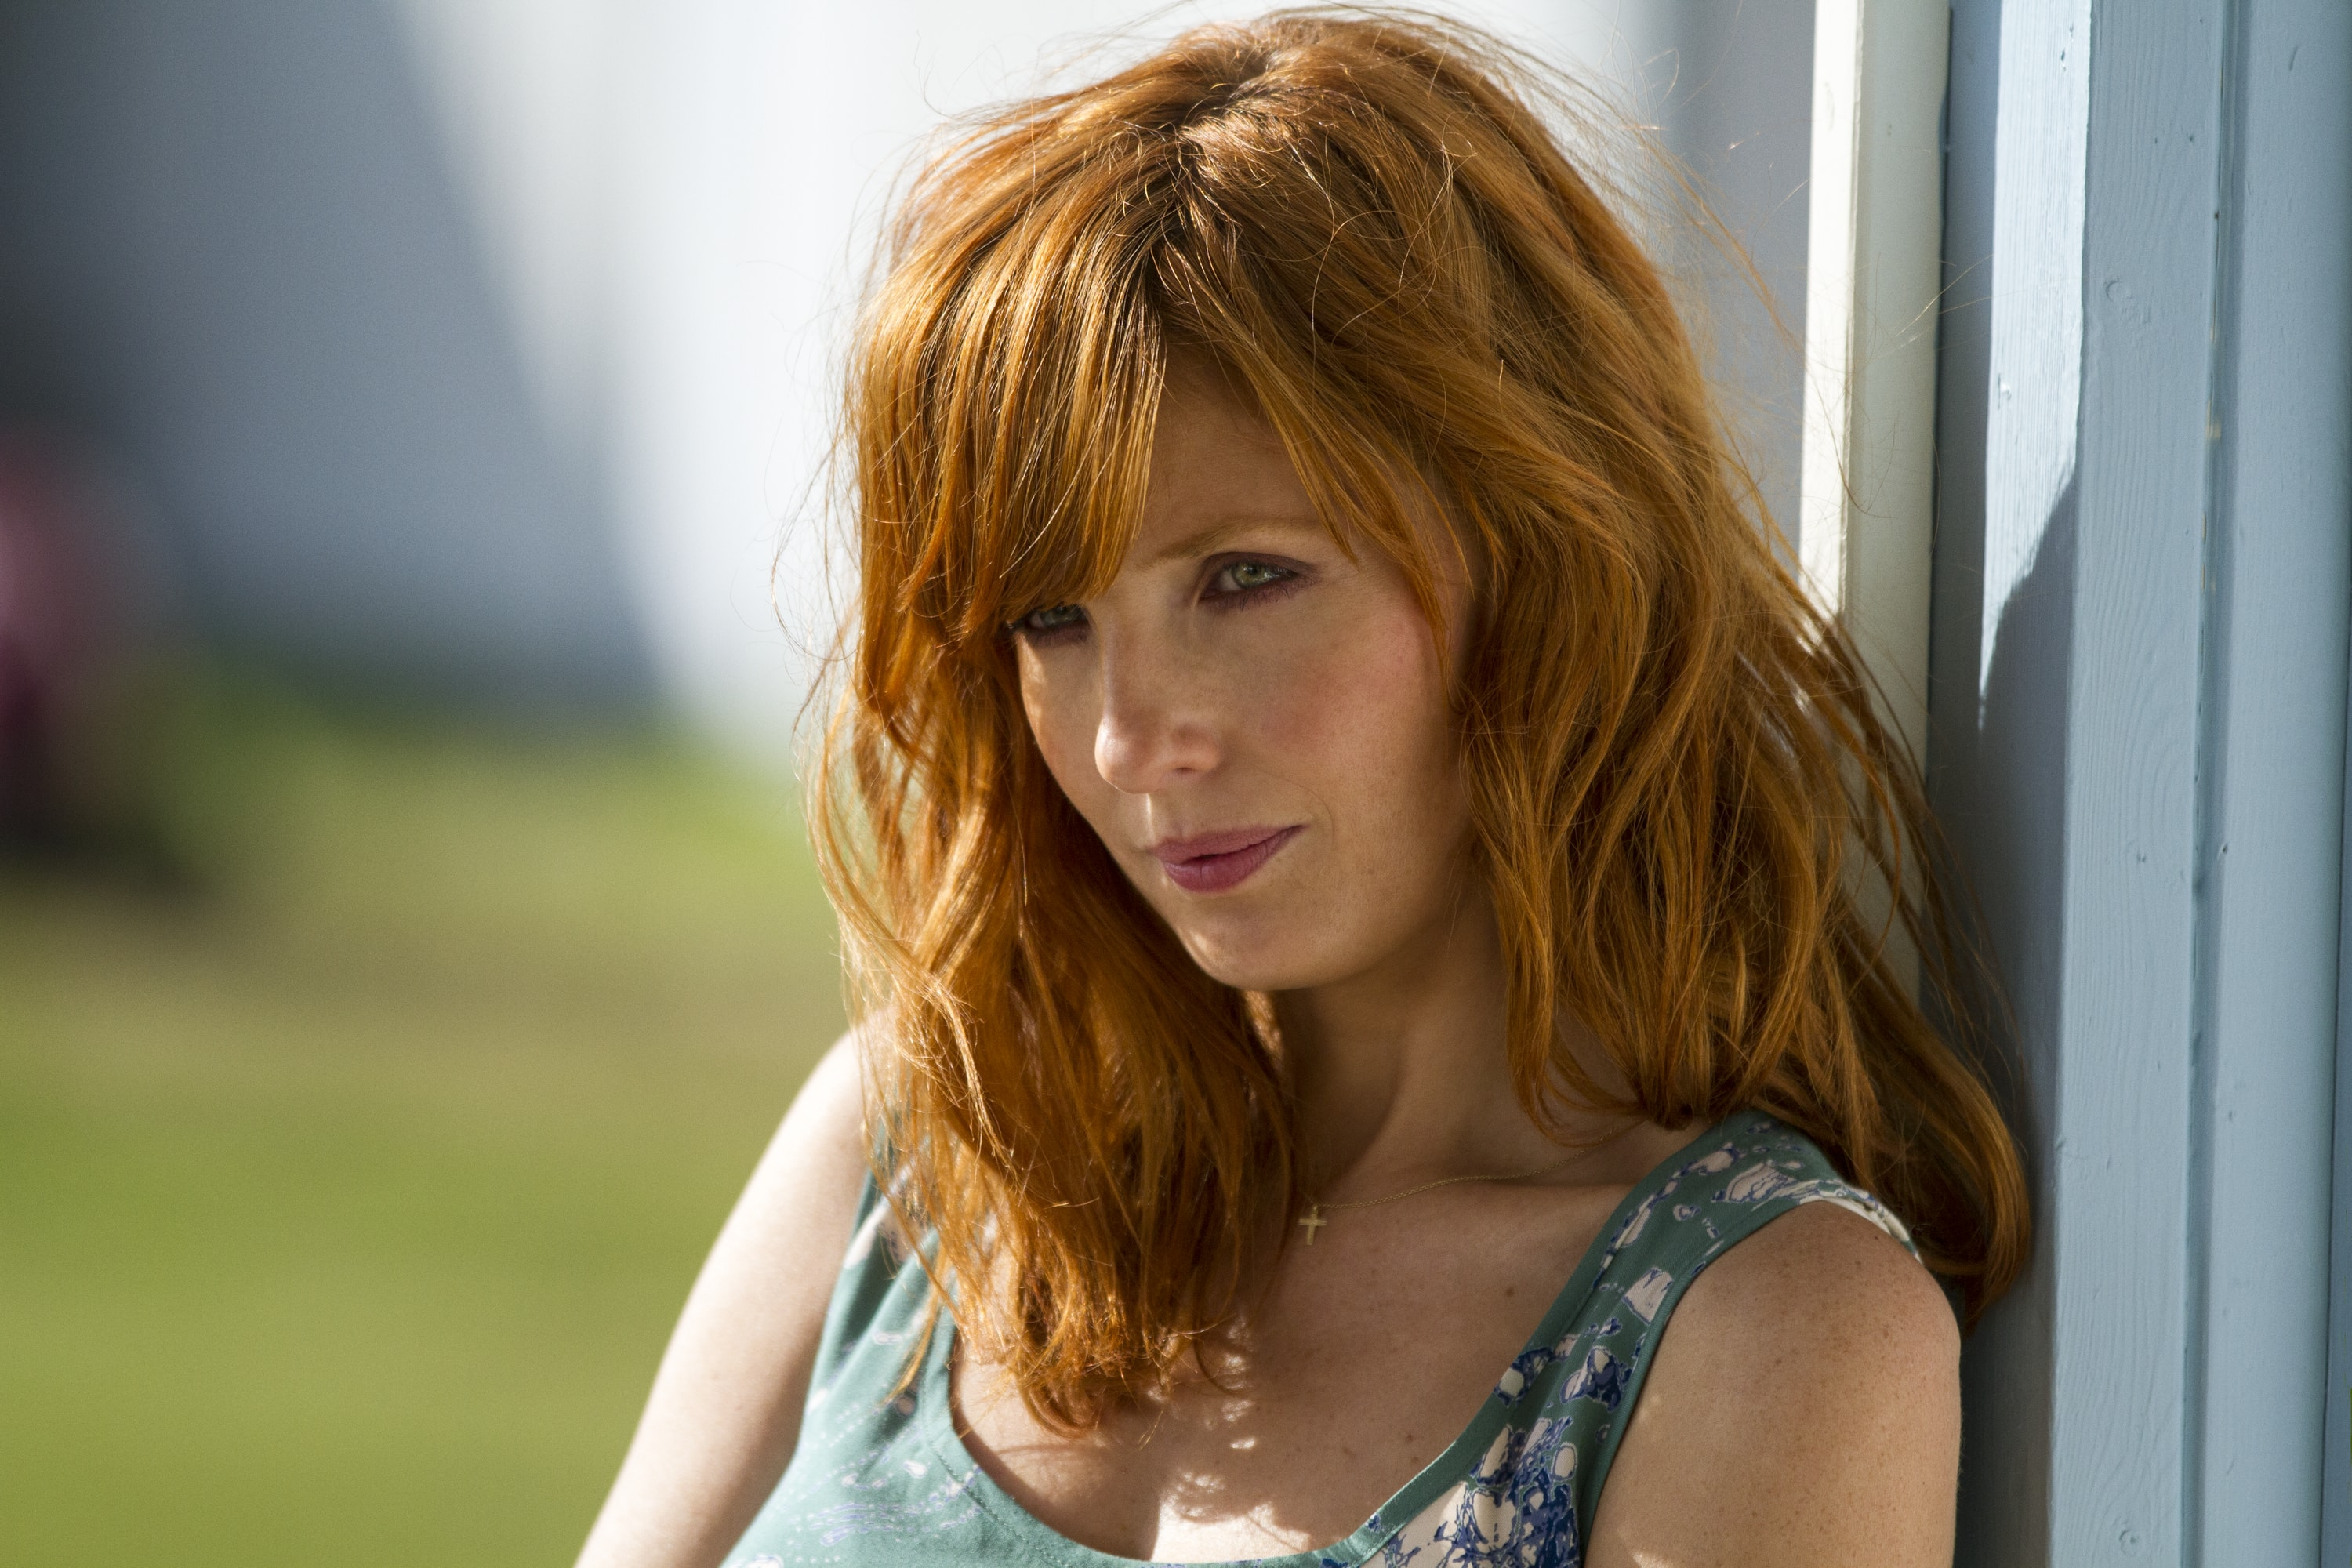 3000x2000 - Kelly Reilly Wallpapers 11